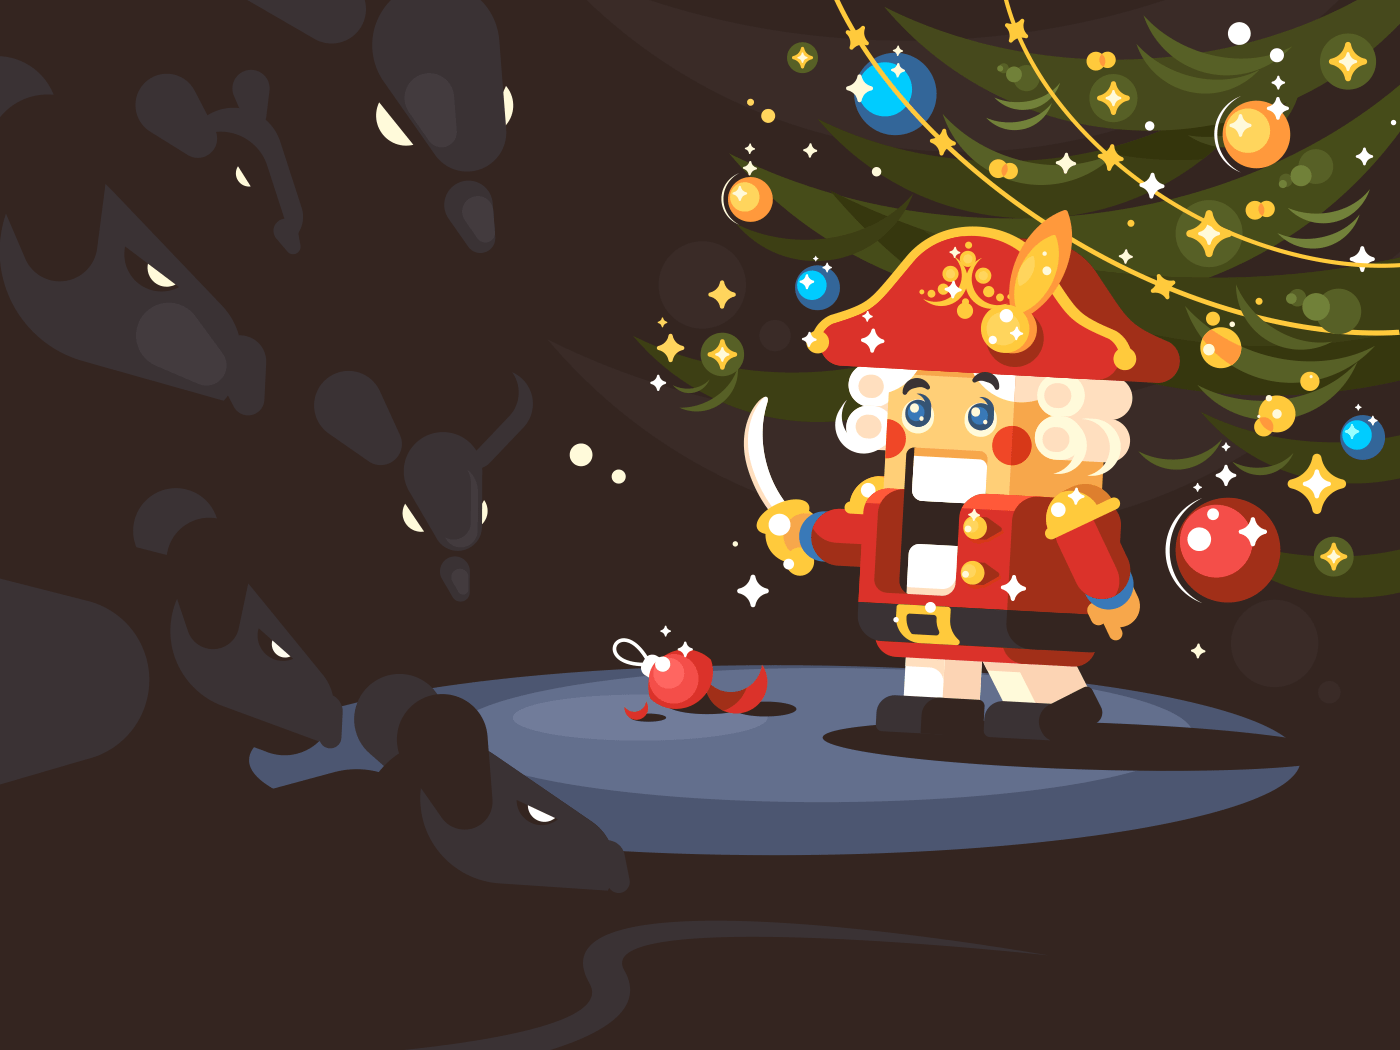 Character of nutcracker with saber under Christmas tree. Vector illustration